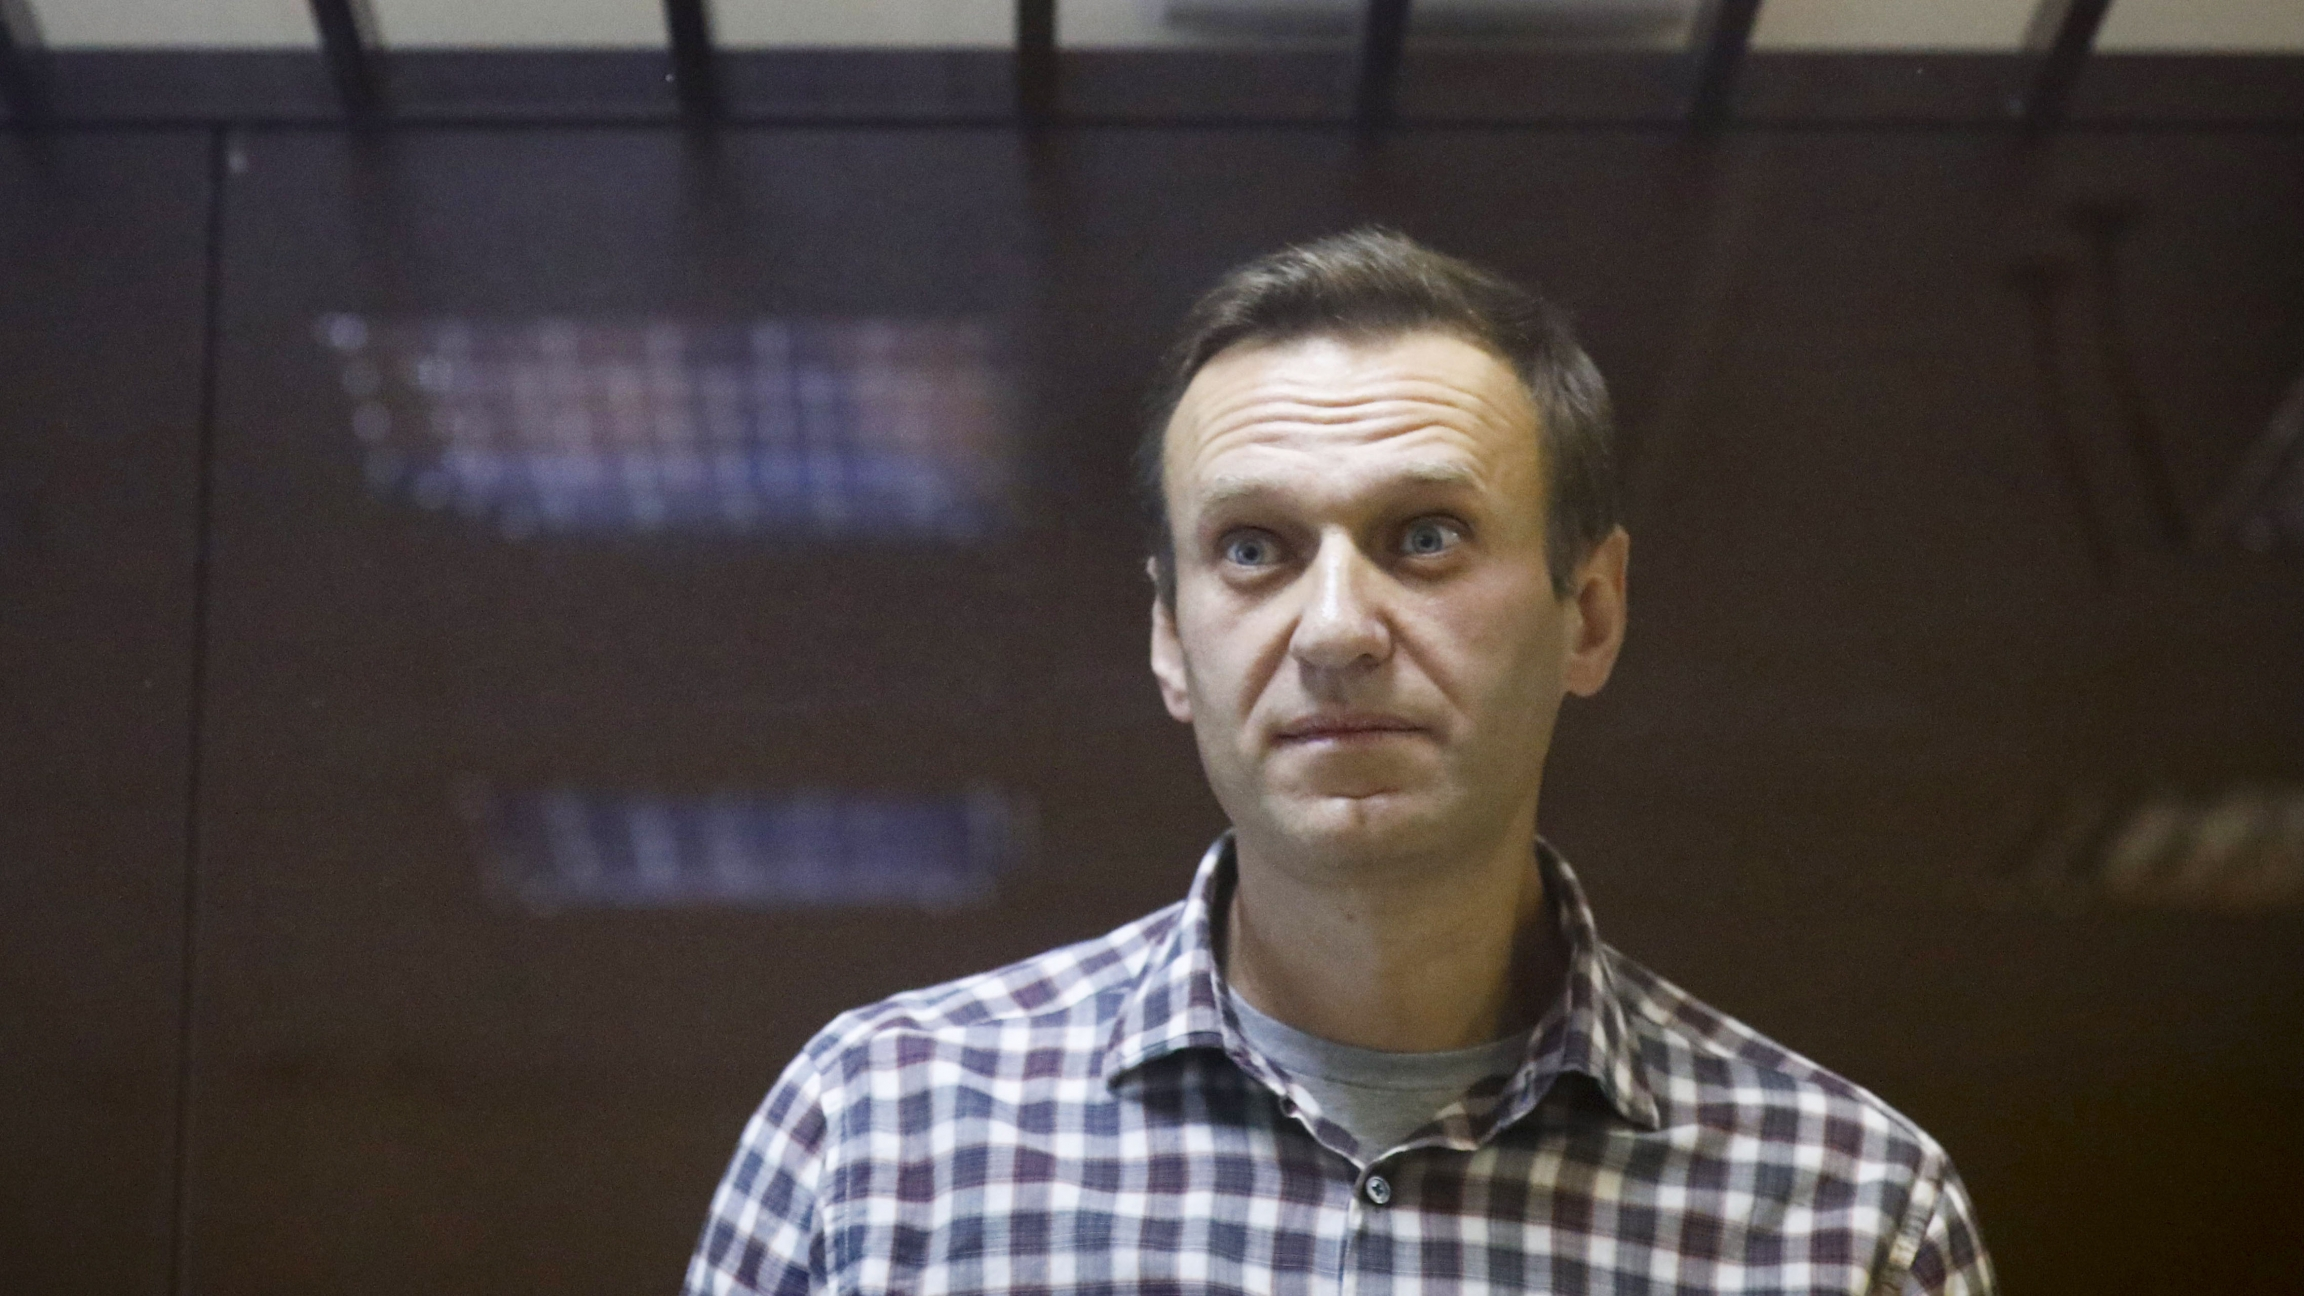 Alexei Navalny wears a plaid shirt and looks a bit startled with his eyes widened at the camera.